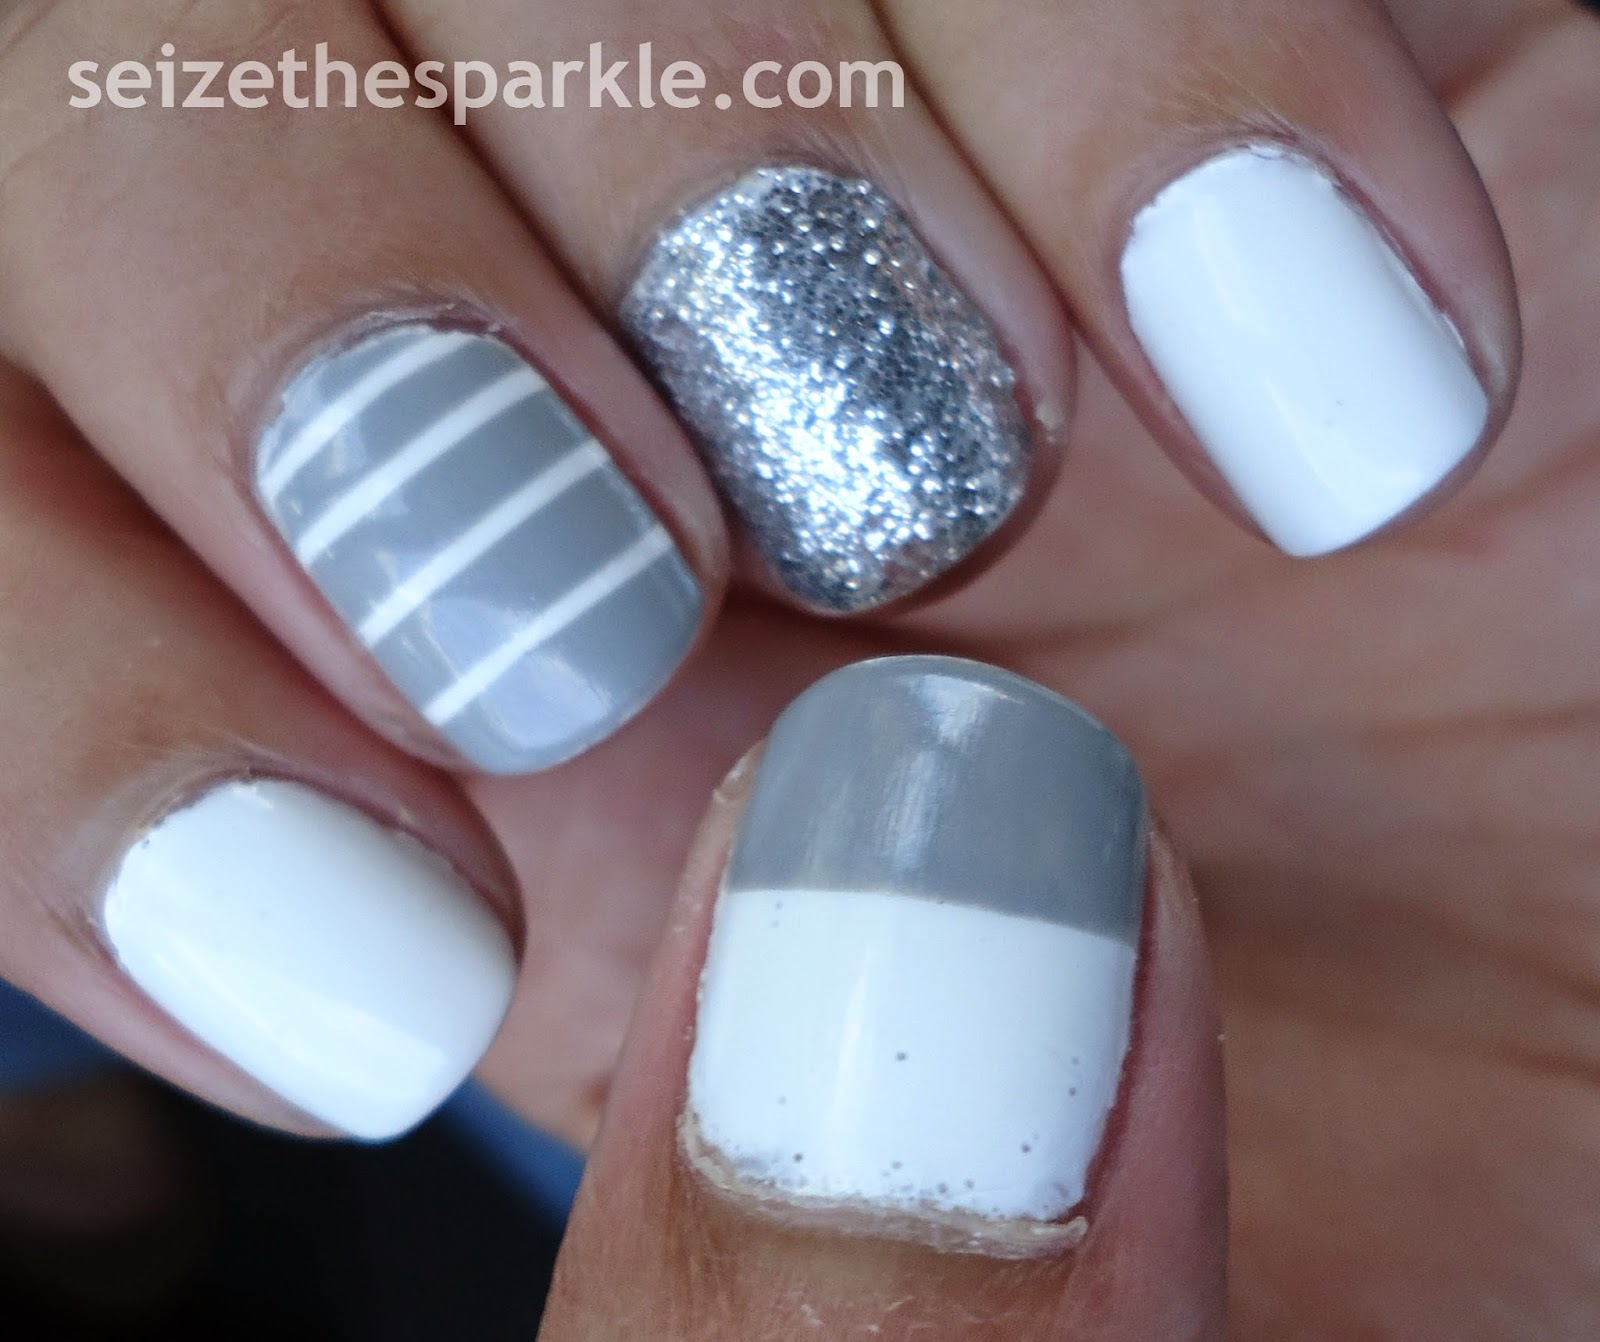 Gray, White, and Silver Skittle Manicure